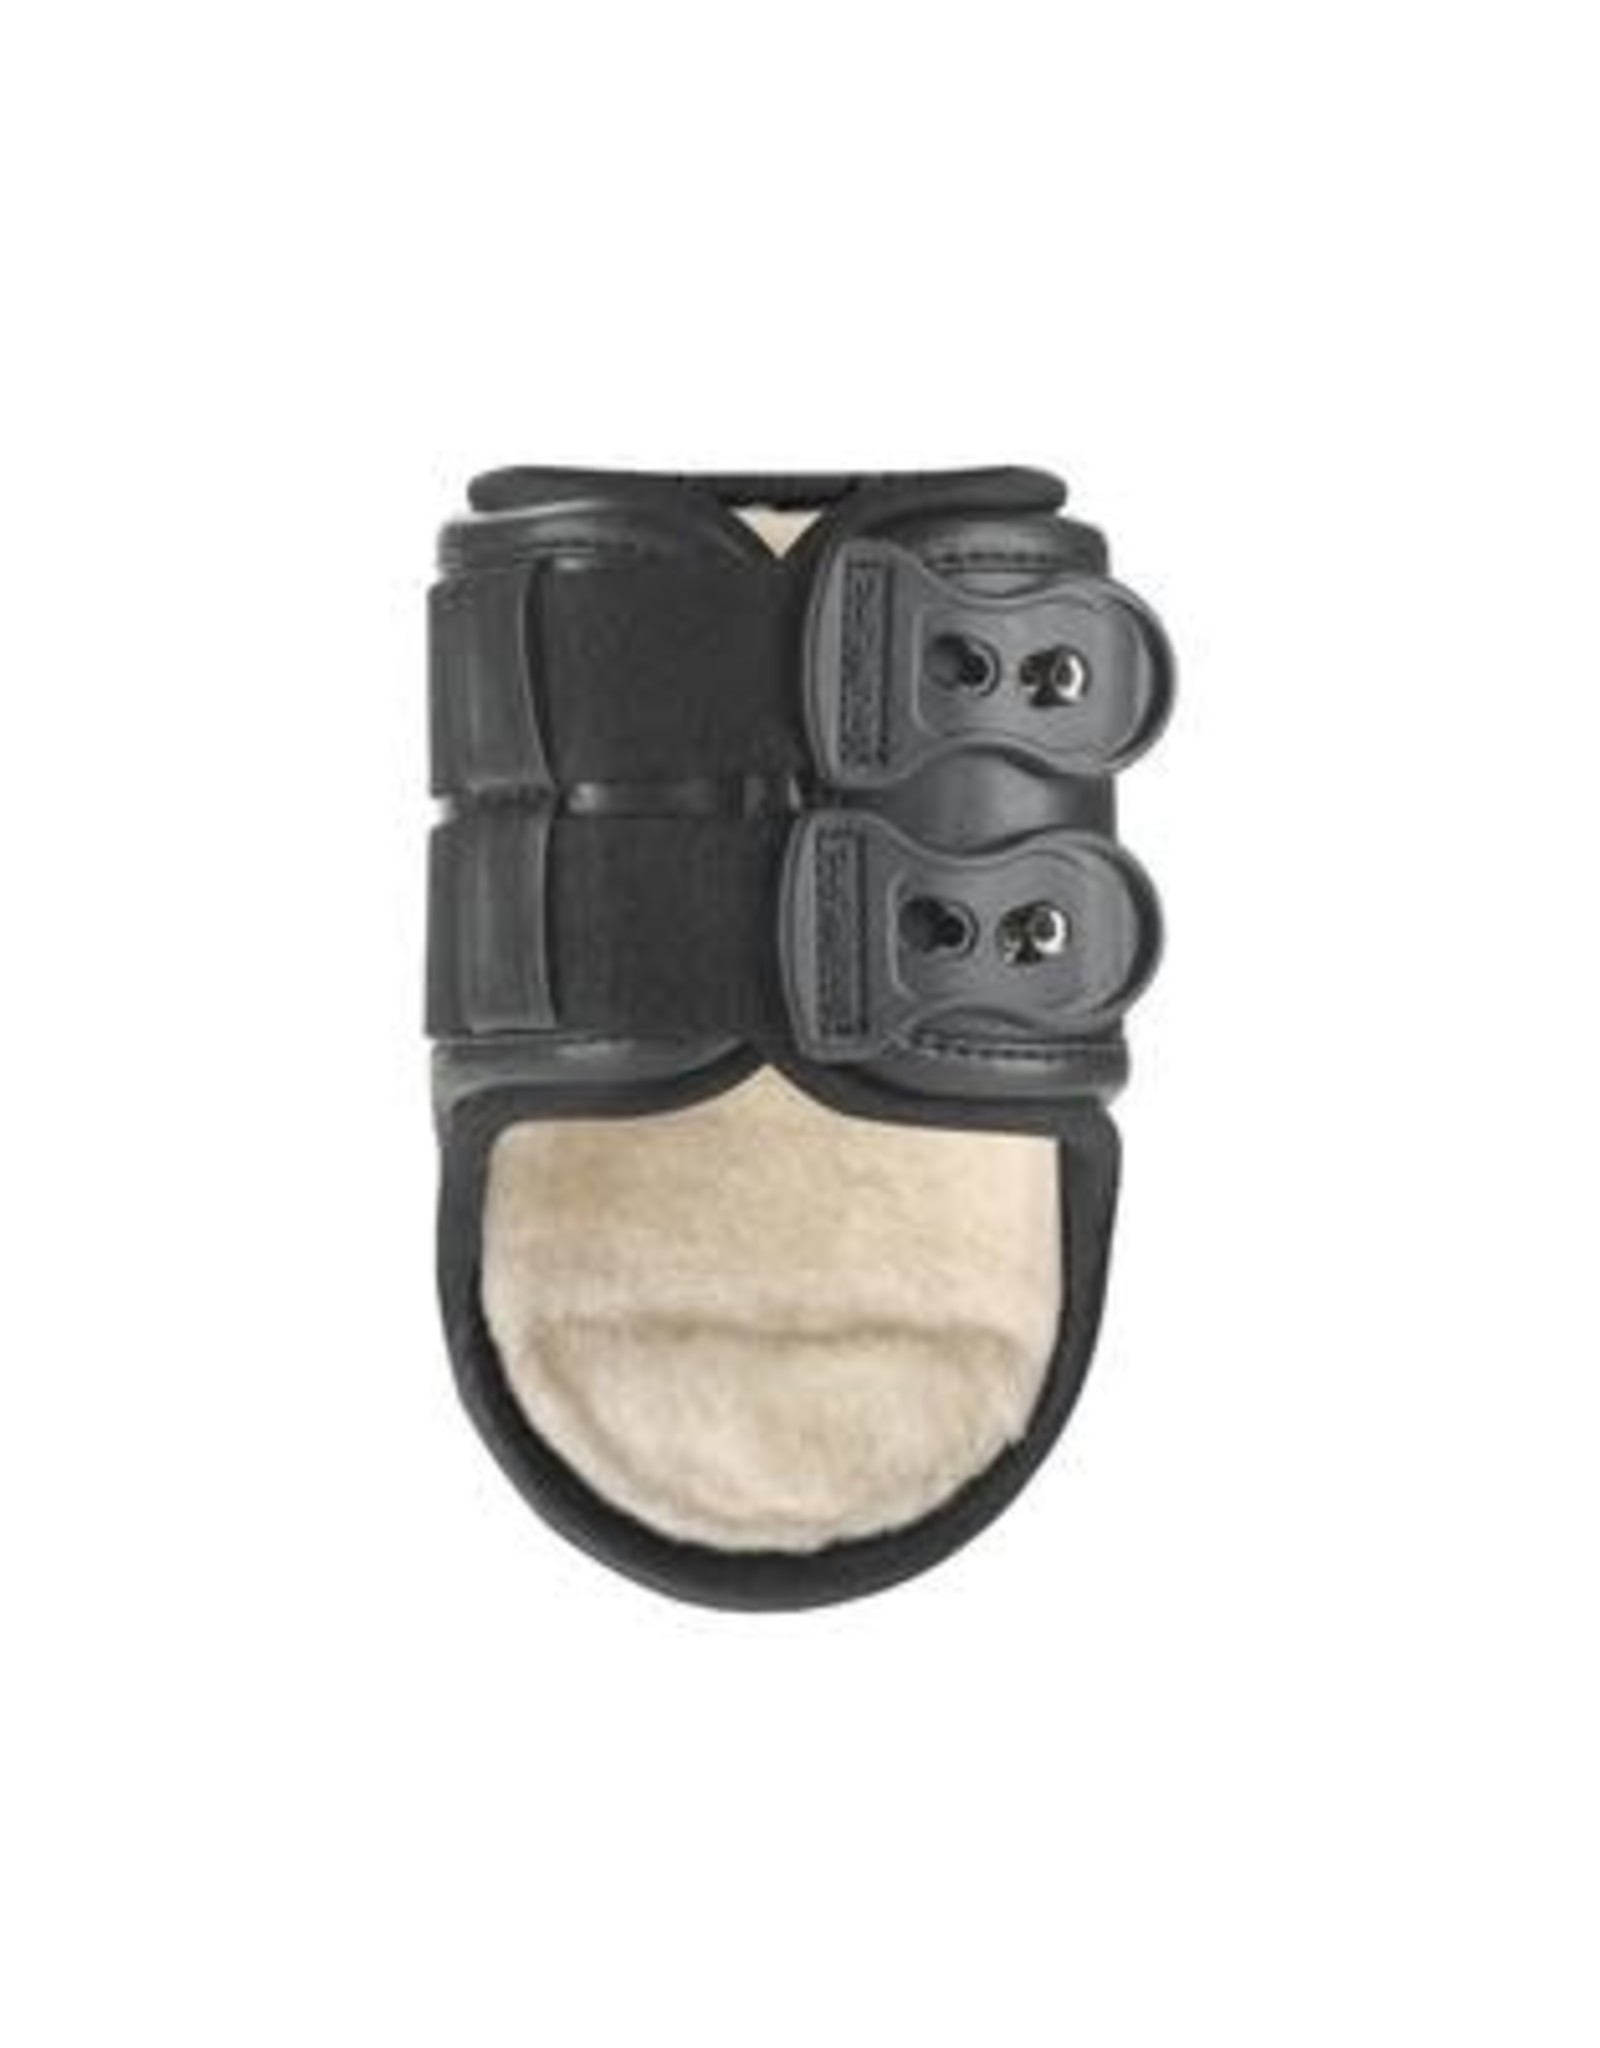 Equifit EQ-Teq Hind boot with Sheepswool liner